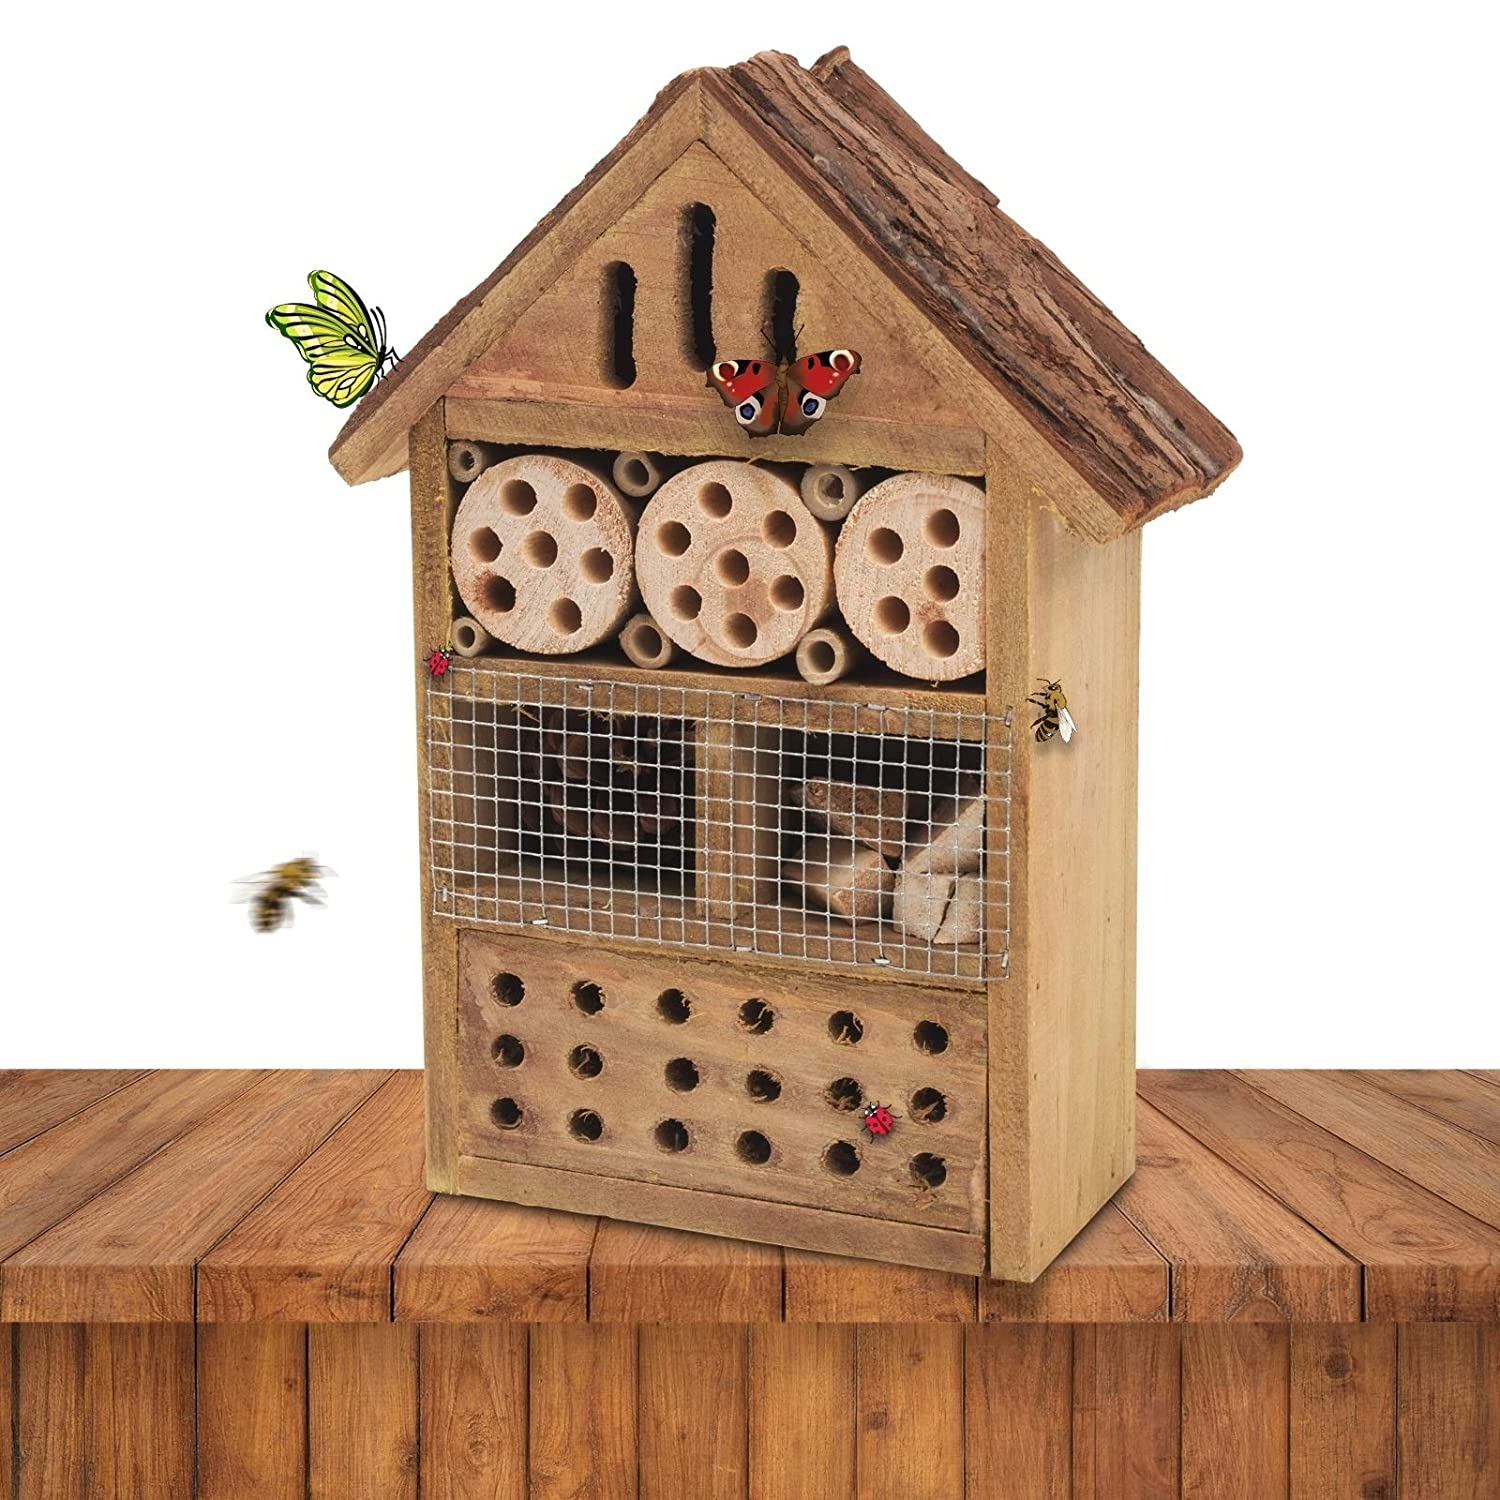 Gardigo 90538 - Natural Wooden Insect Hotel; Nesting/Hibernating Home; Bugs, Bees, Wasps, Butterflies House; Gift Idea